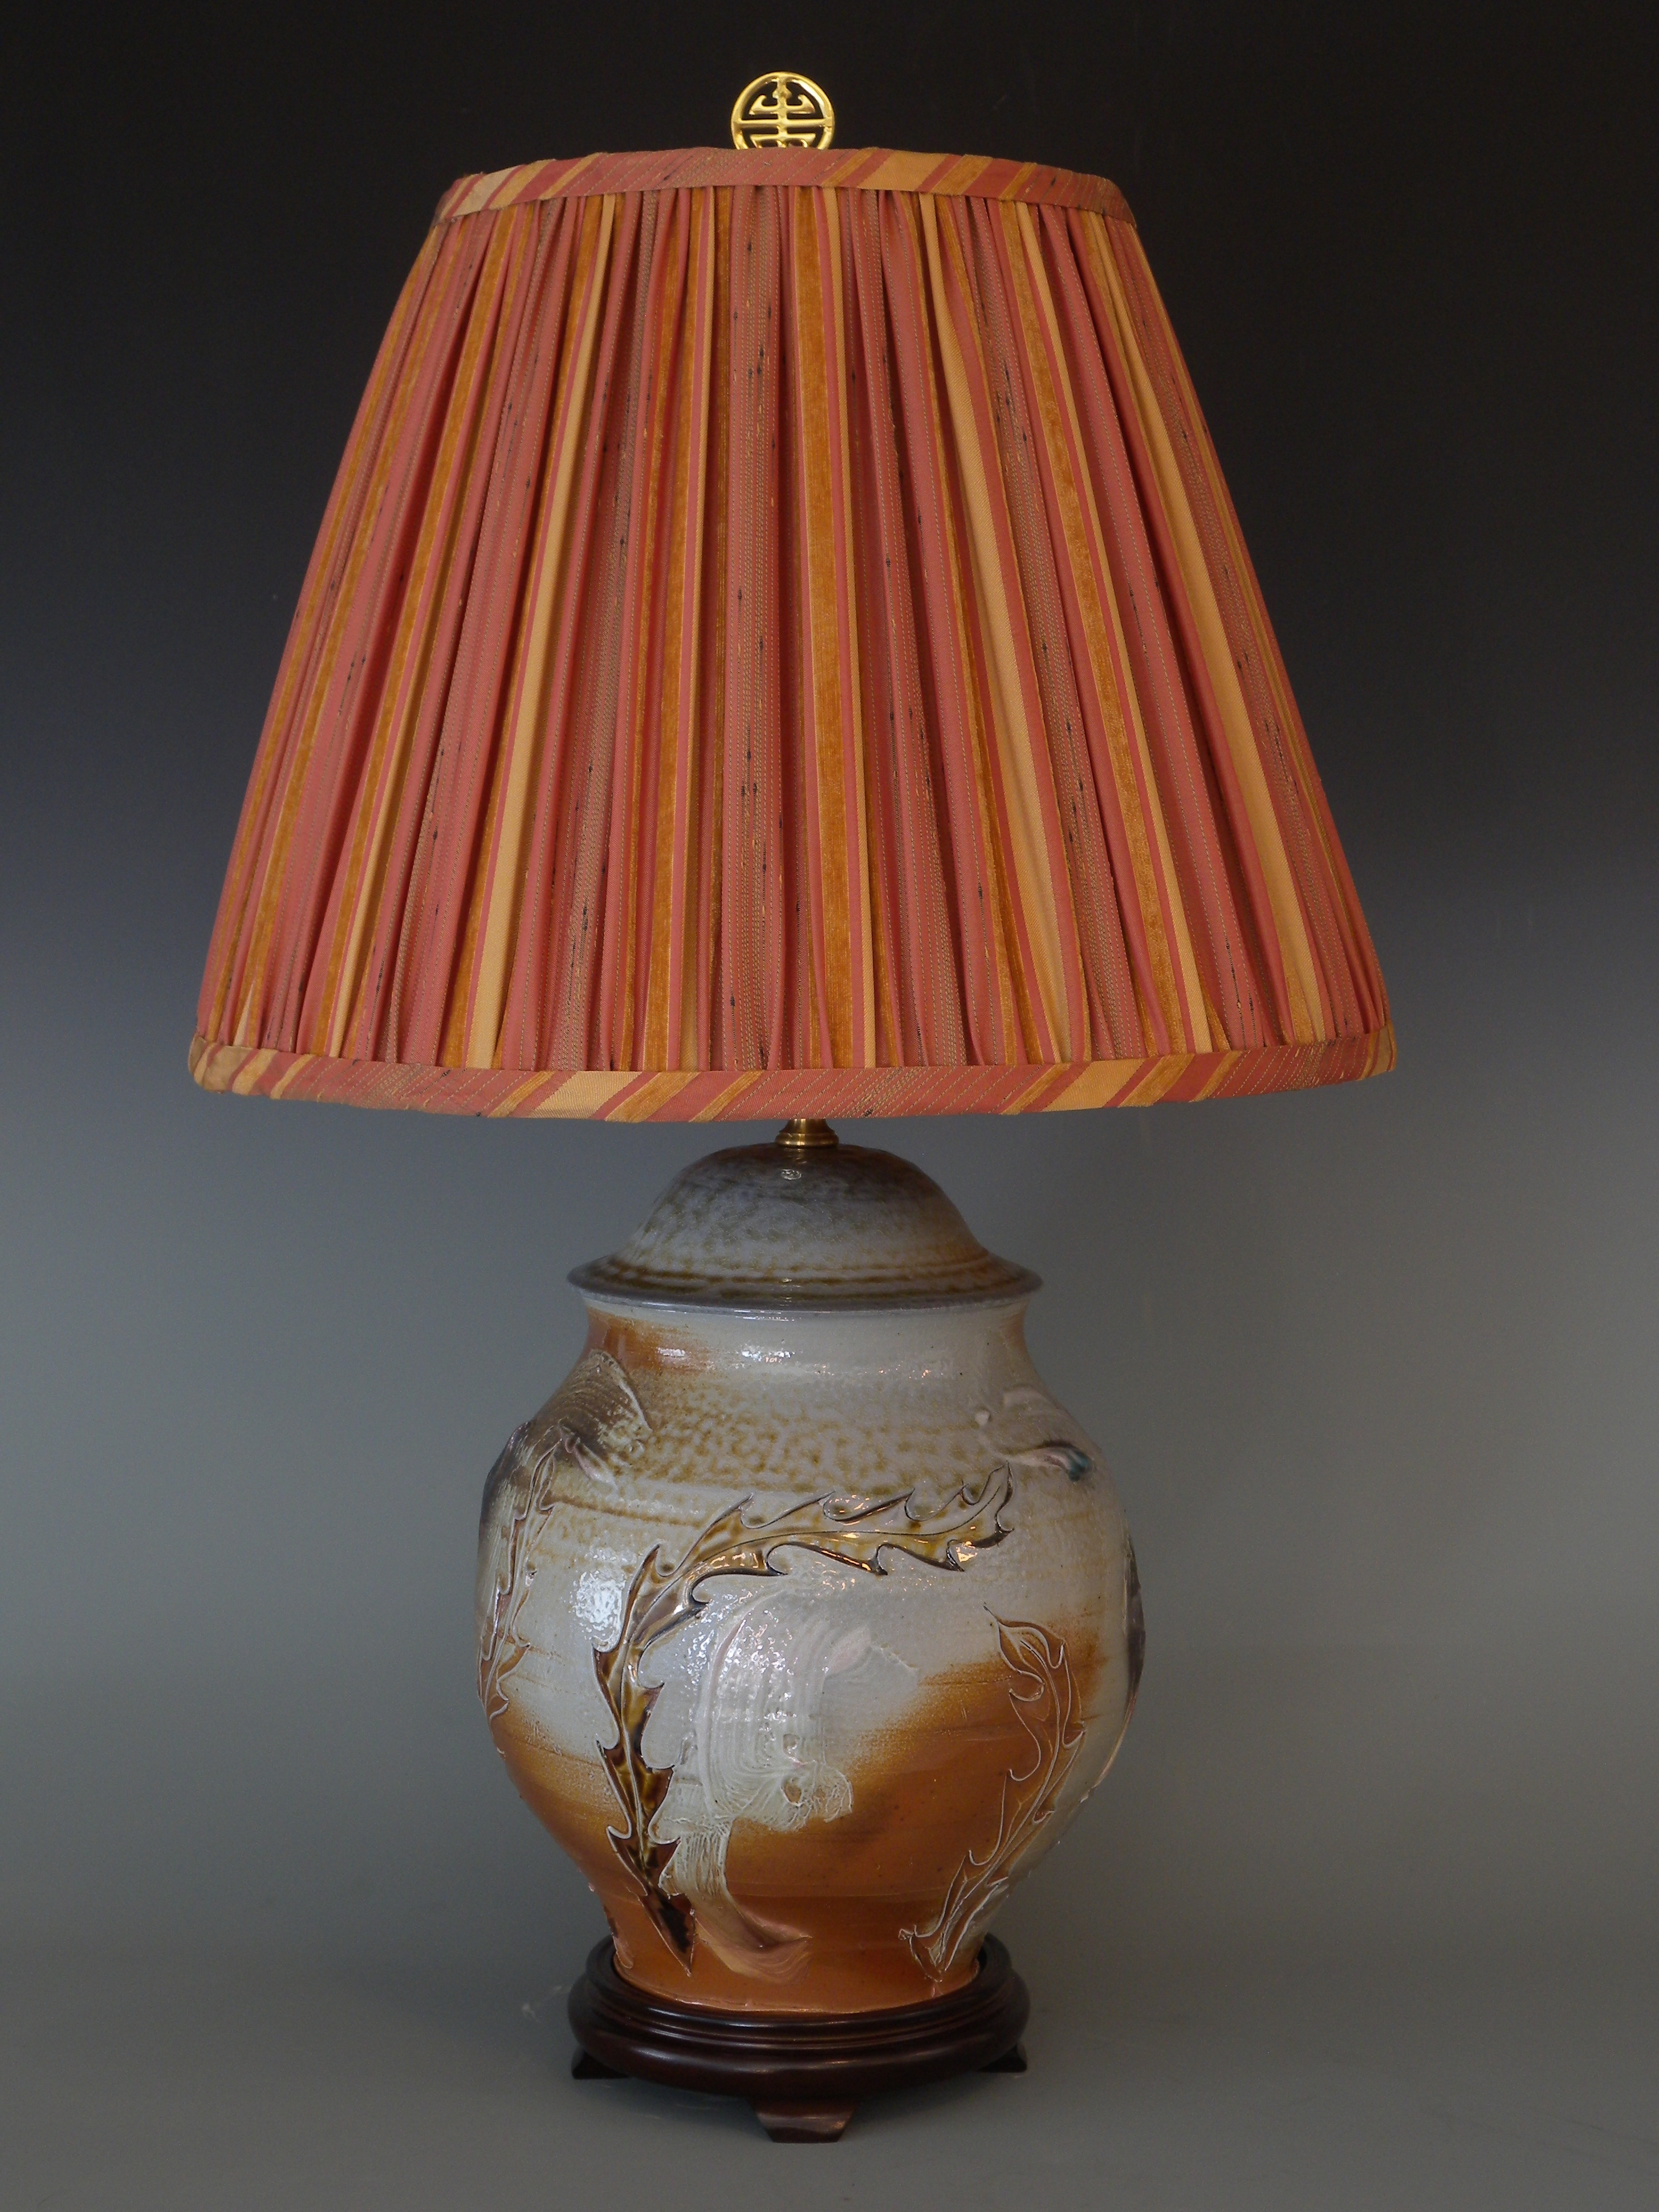 Anagama fired lamp